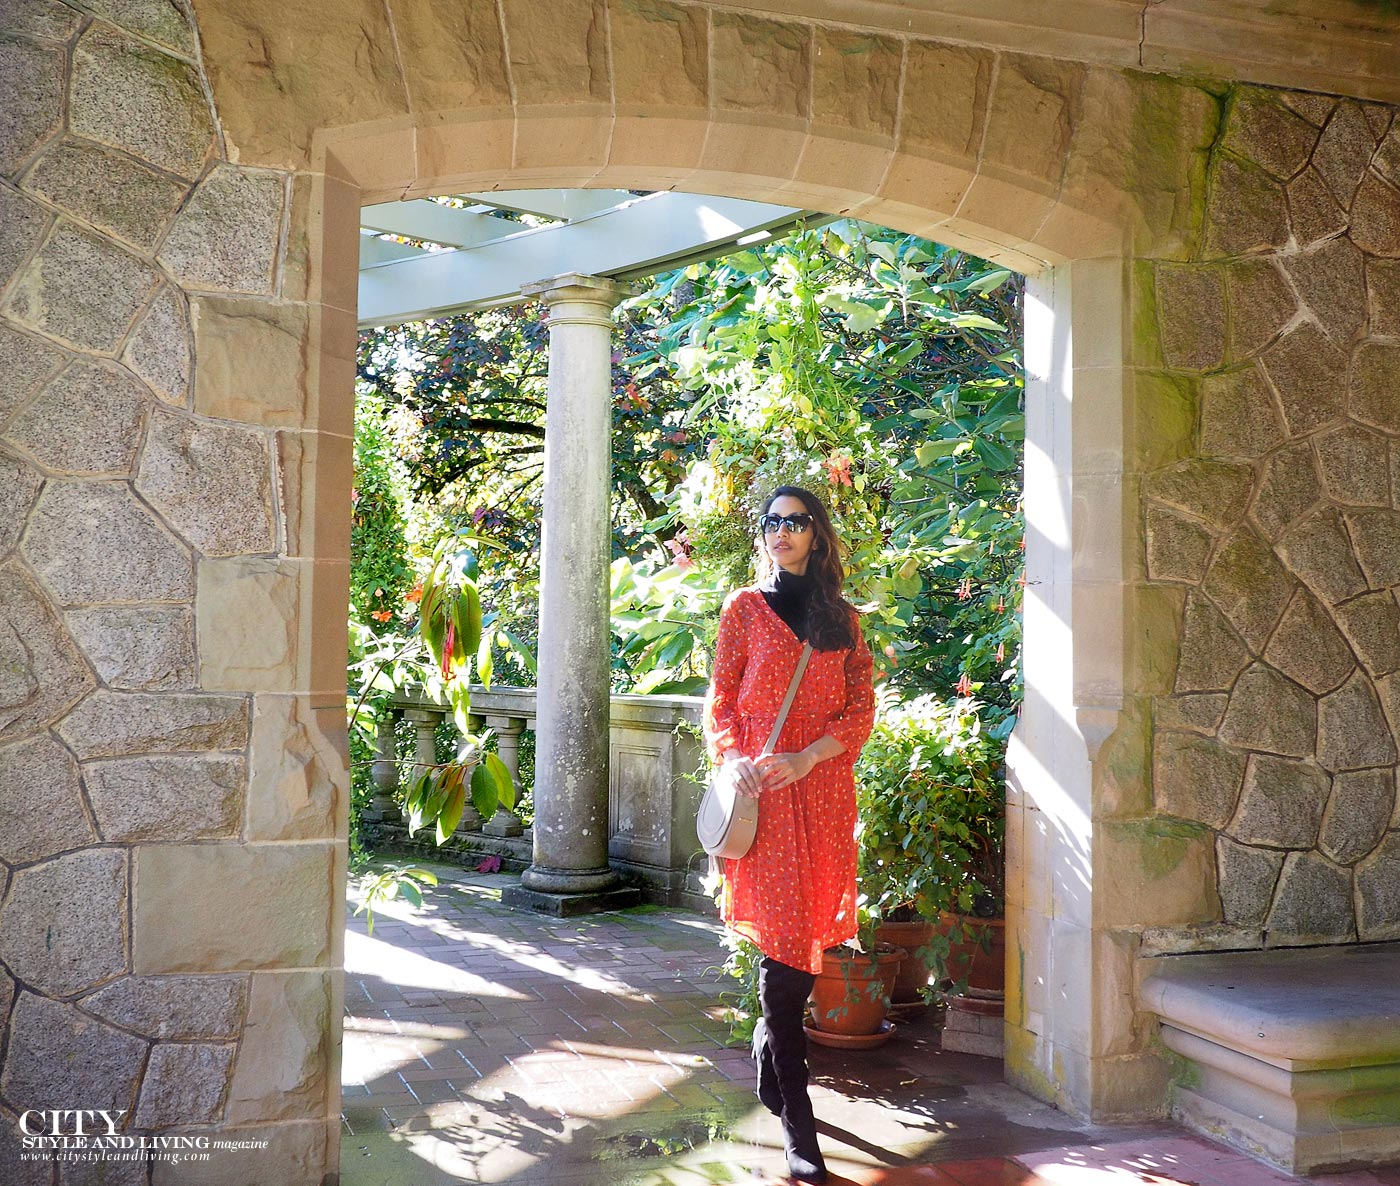 City style and living magazine Editors Notebook style fashion blogger Shivana M Hatley Castle and Gardens rose and floral dress with knee high black boots Italian gardens stone wall